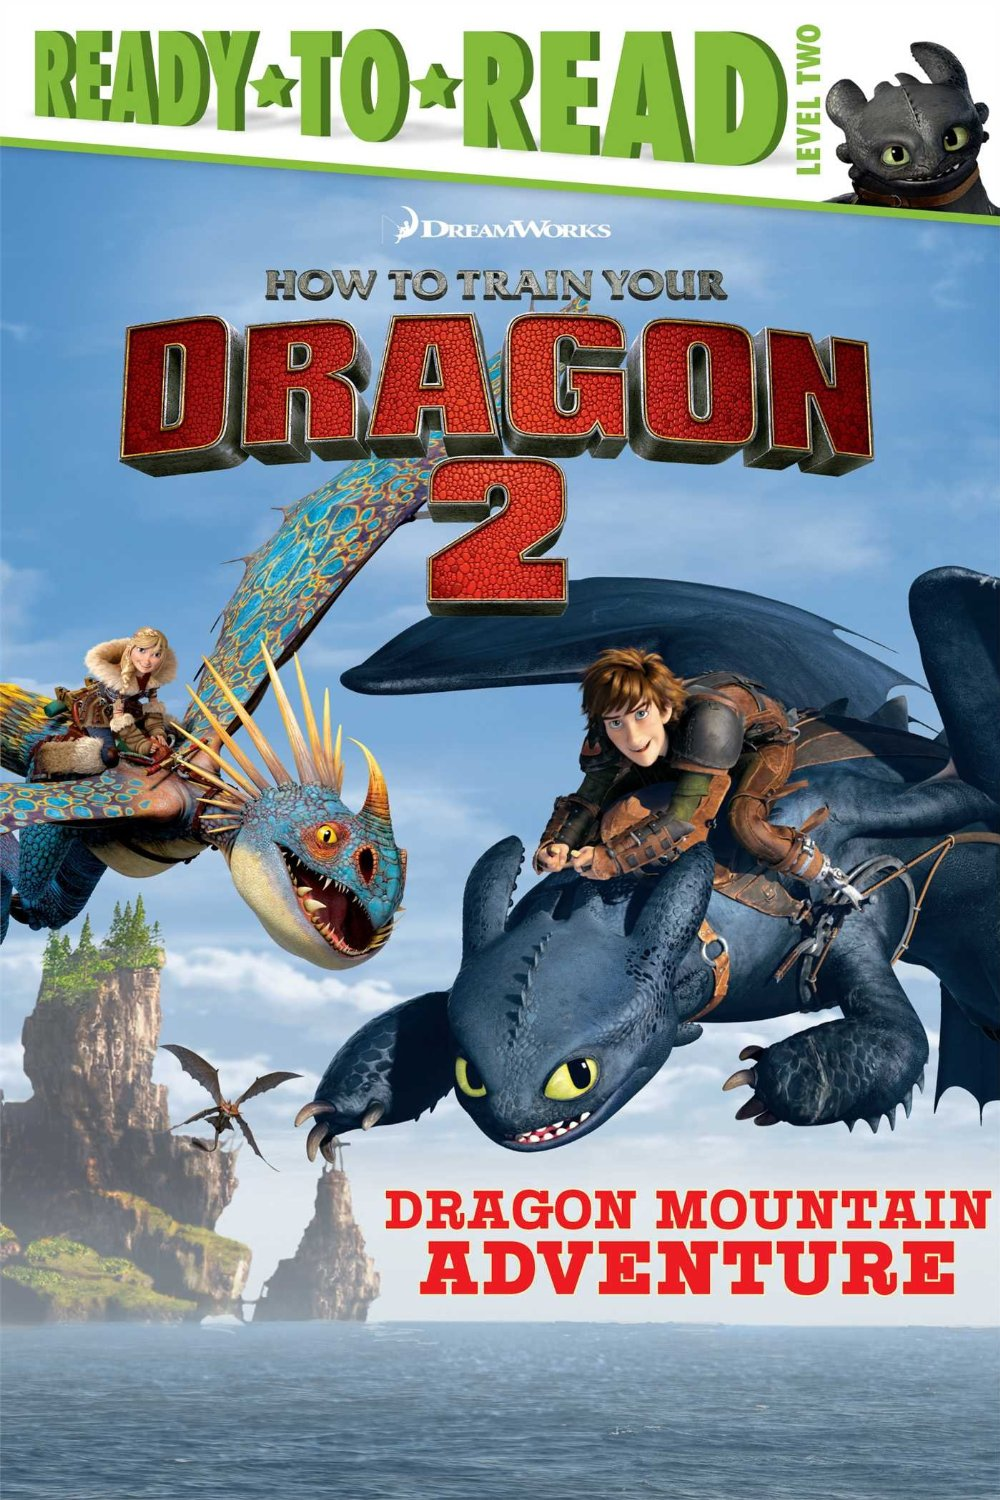 how to train your dragon 2 images how to train your dragon 2 books